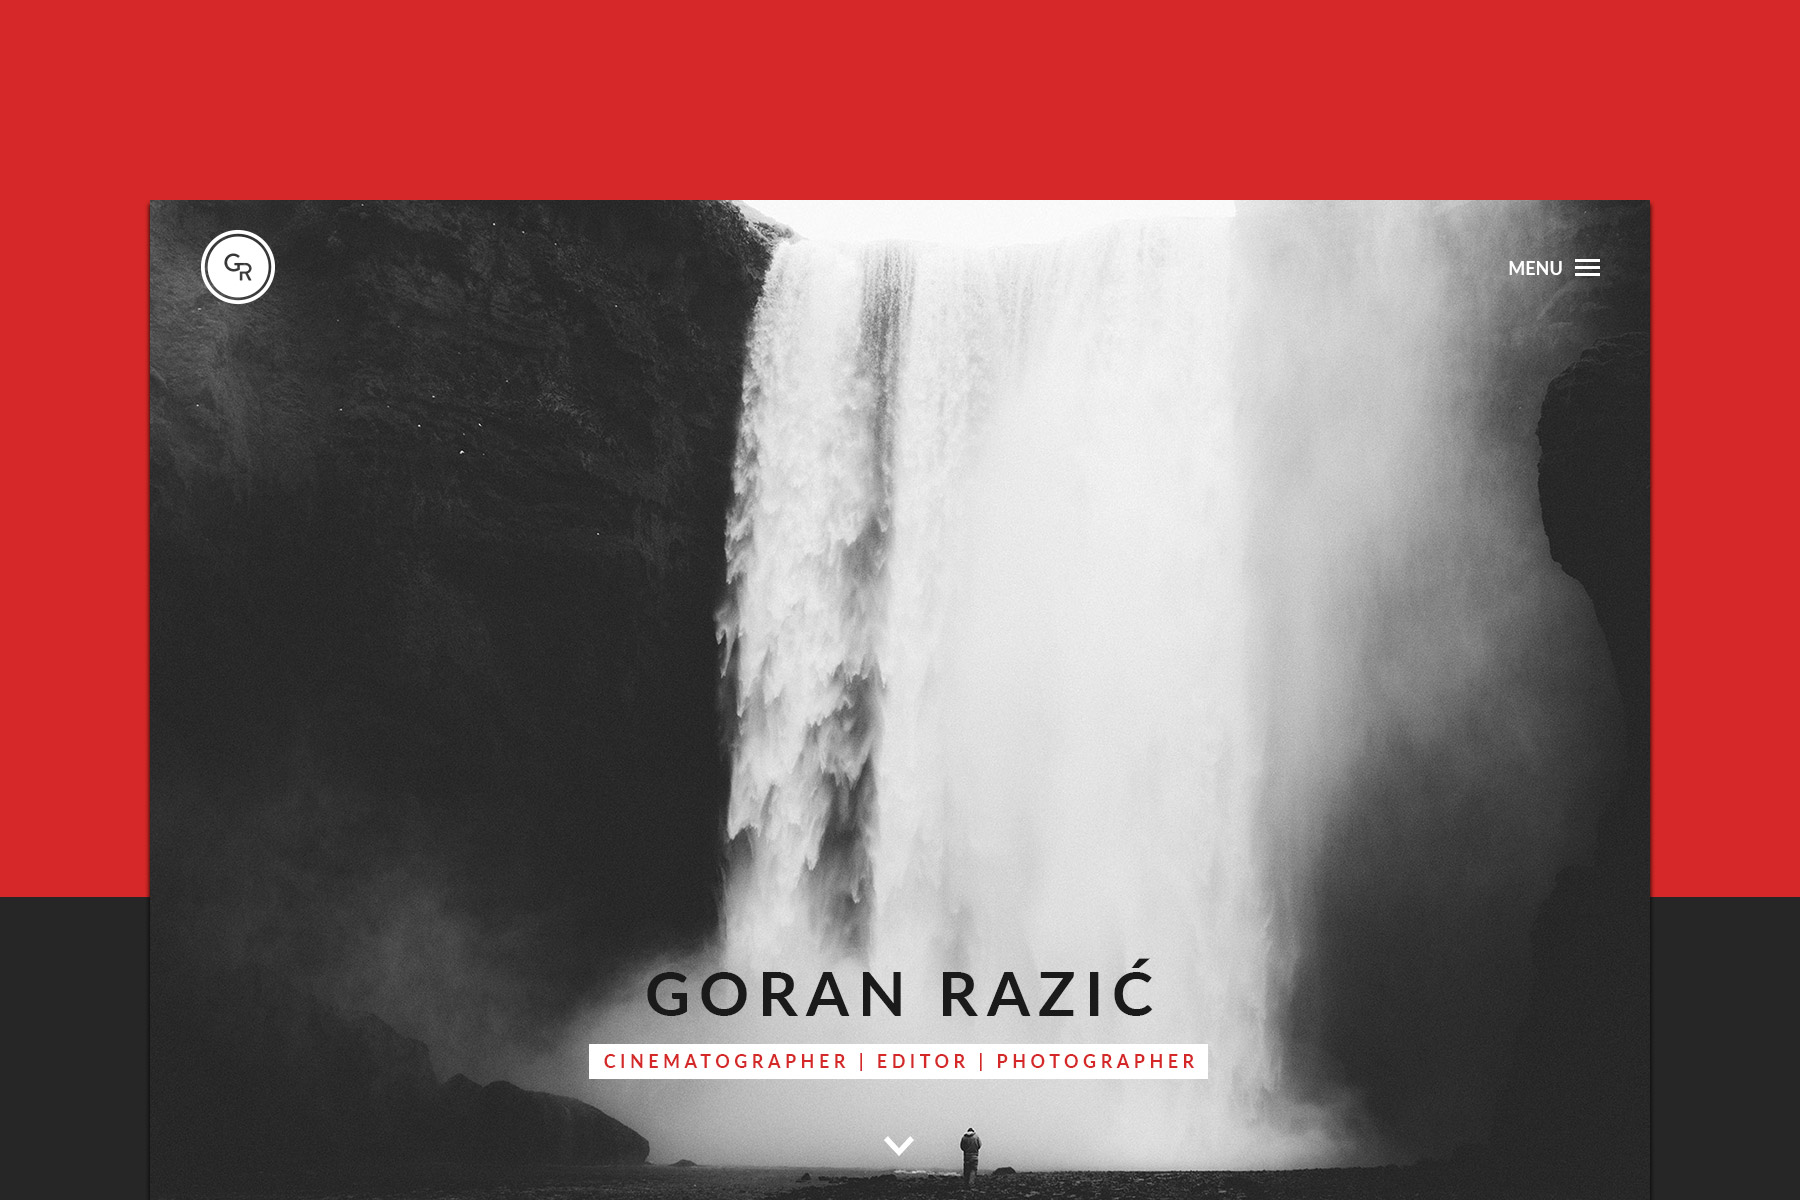 Goran Razic project